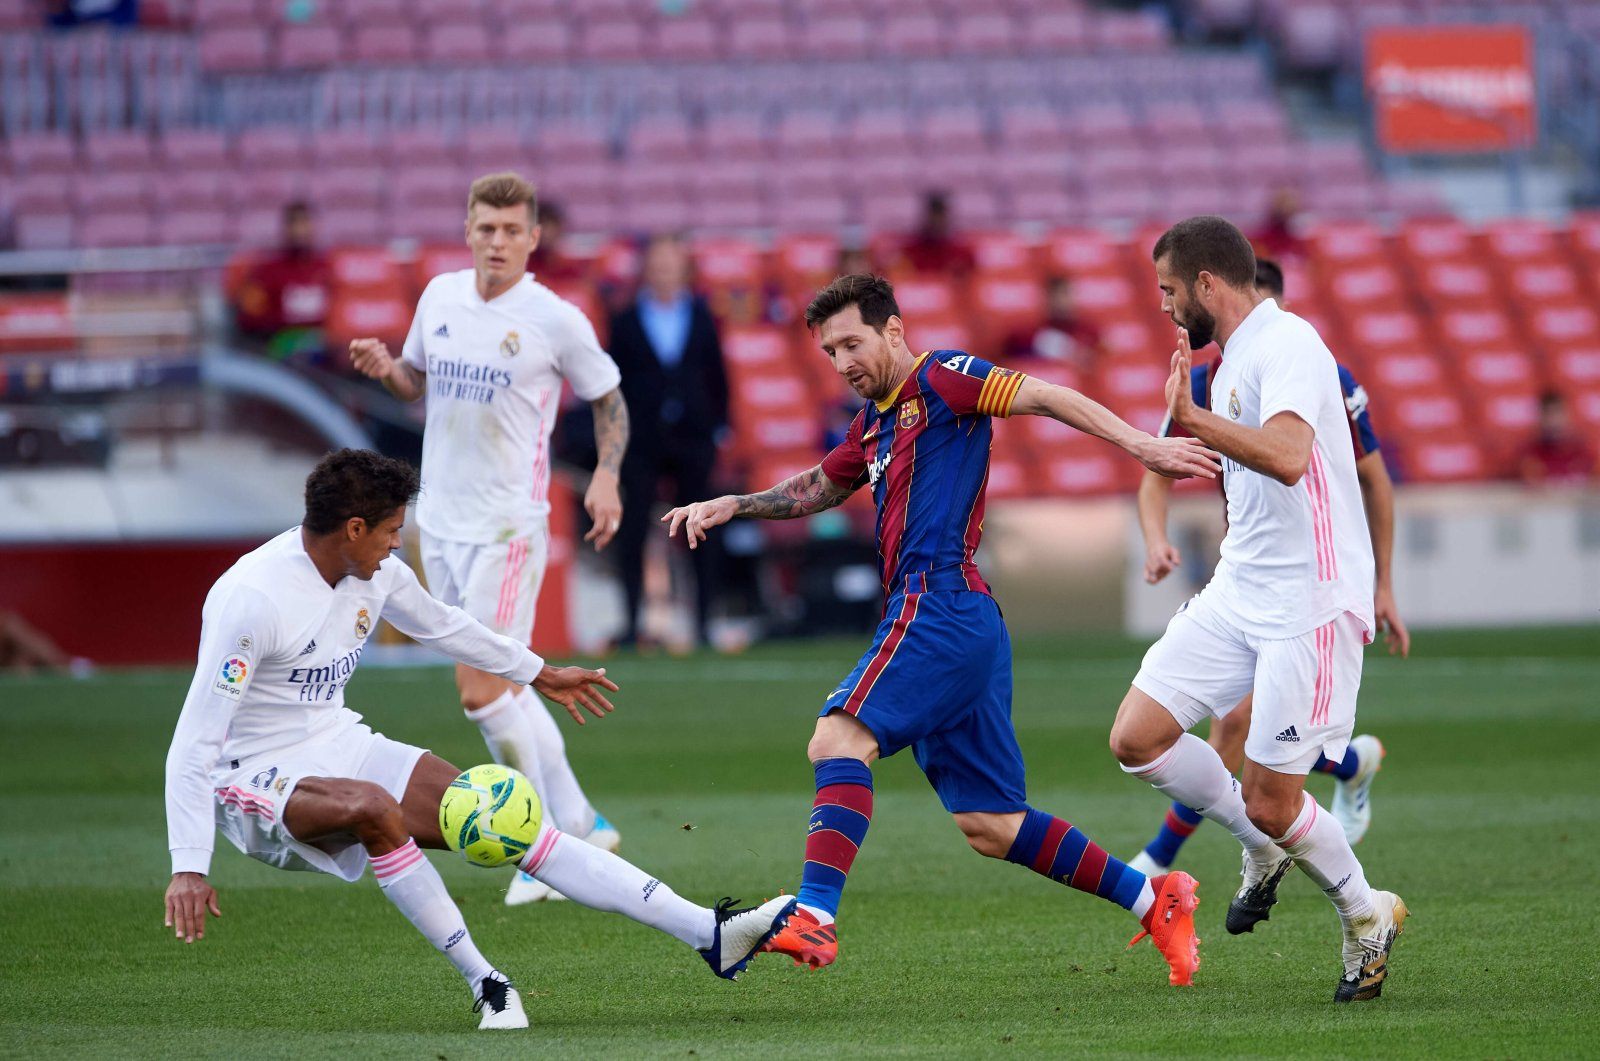 Barcelona's Lionel Messi (C) tries to dribble past Real Madrid's Raphael Varane (L) and Nacho Fernandez during a La Liga match at Camp Nou stadium in Barcelona, Spain, Oct. 24, 2020. (Getty Images)